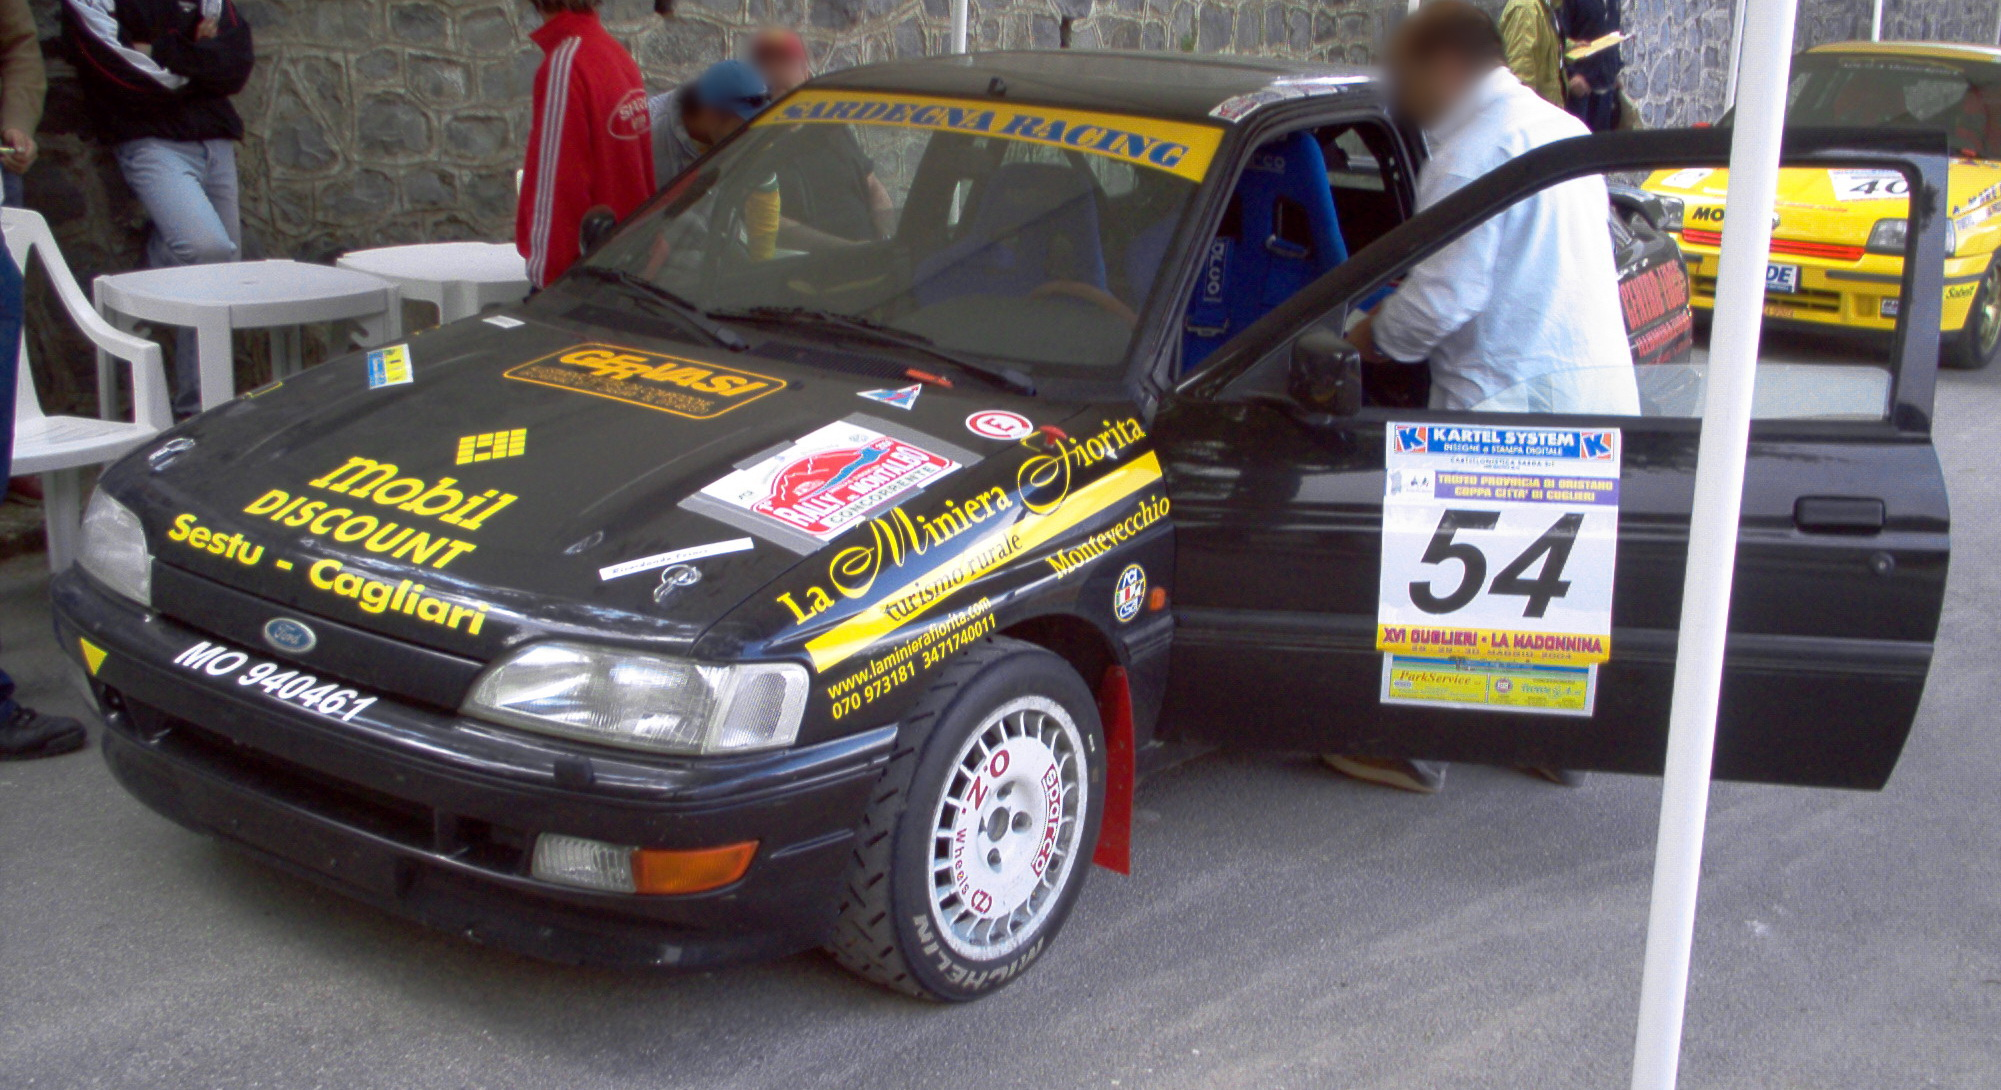 File:54 - Marcello Melis - Ford Escort RS2000.jpg - Wikimedia Commons